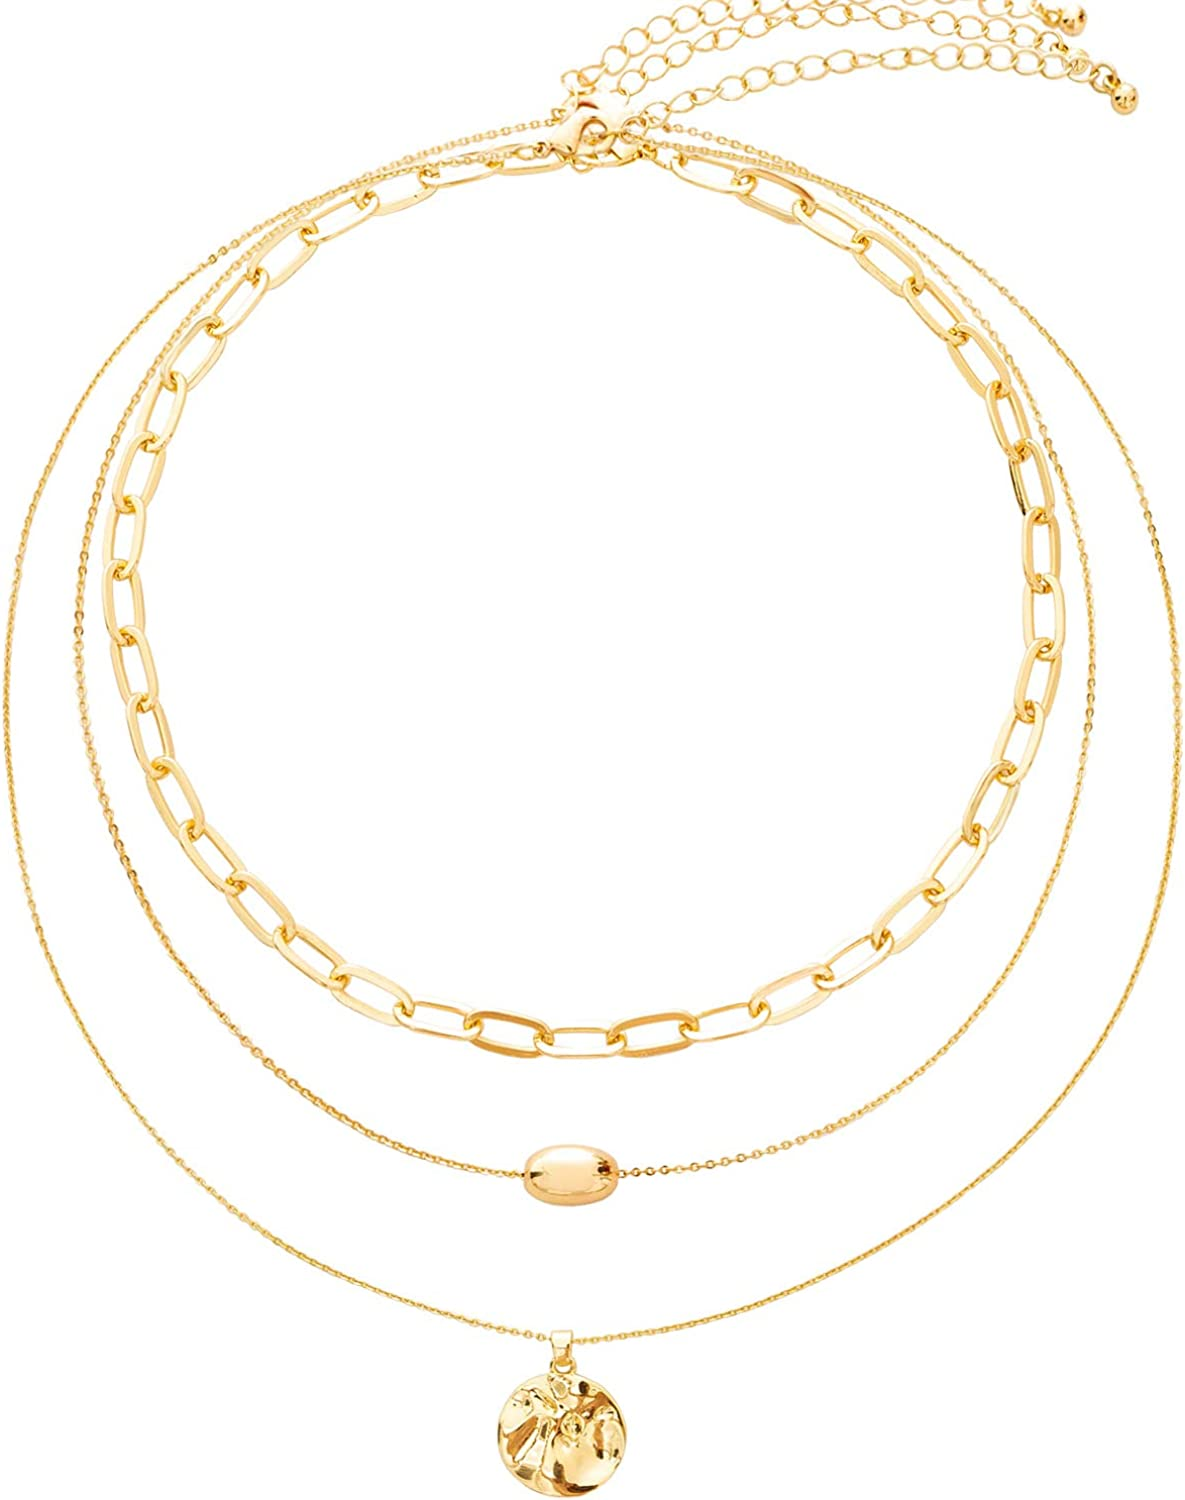 BaubleStar Link Layered Necklace Gold Layering Paperclip Chain Choker for Women